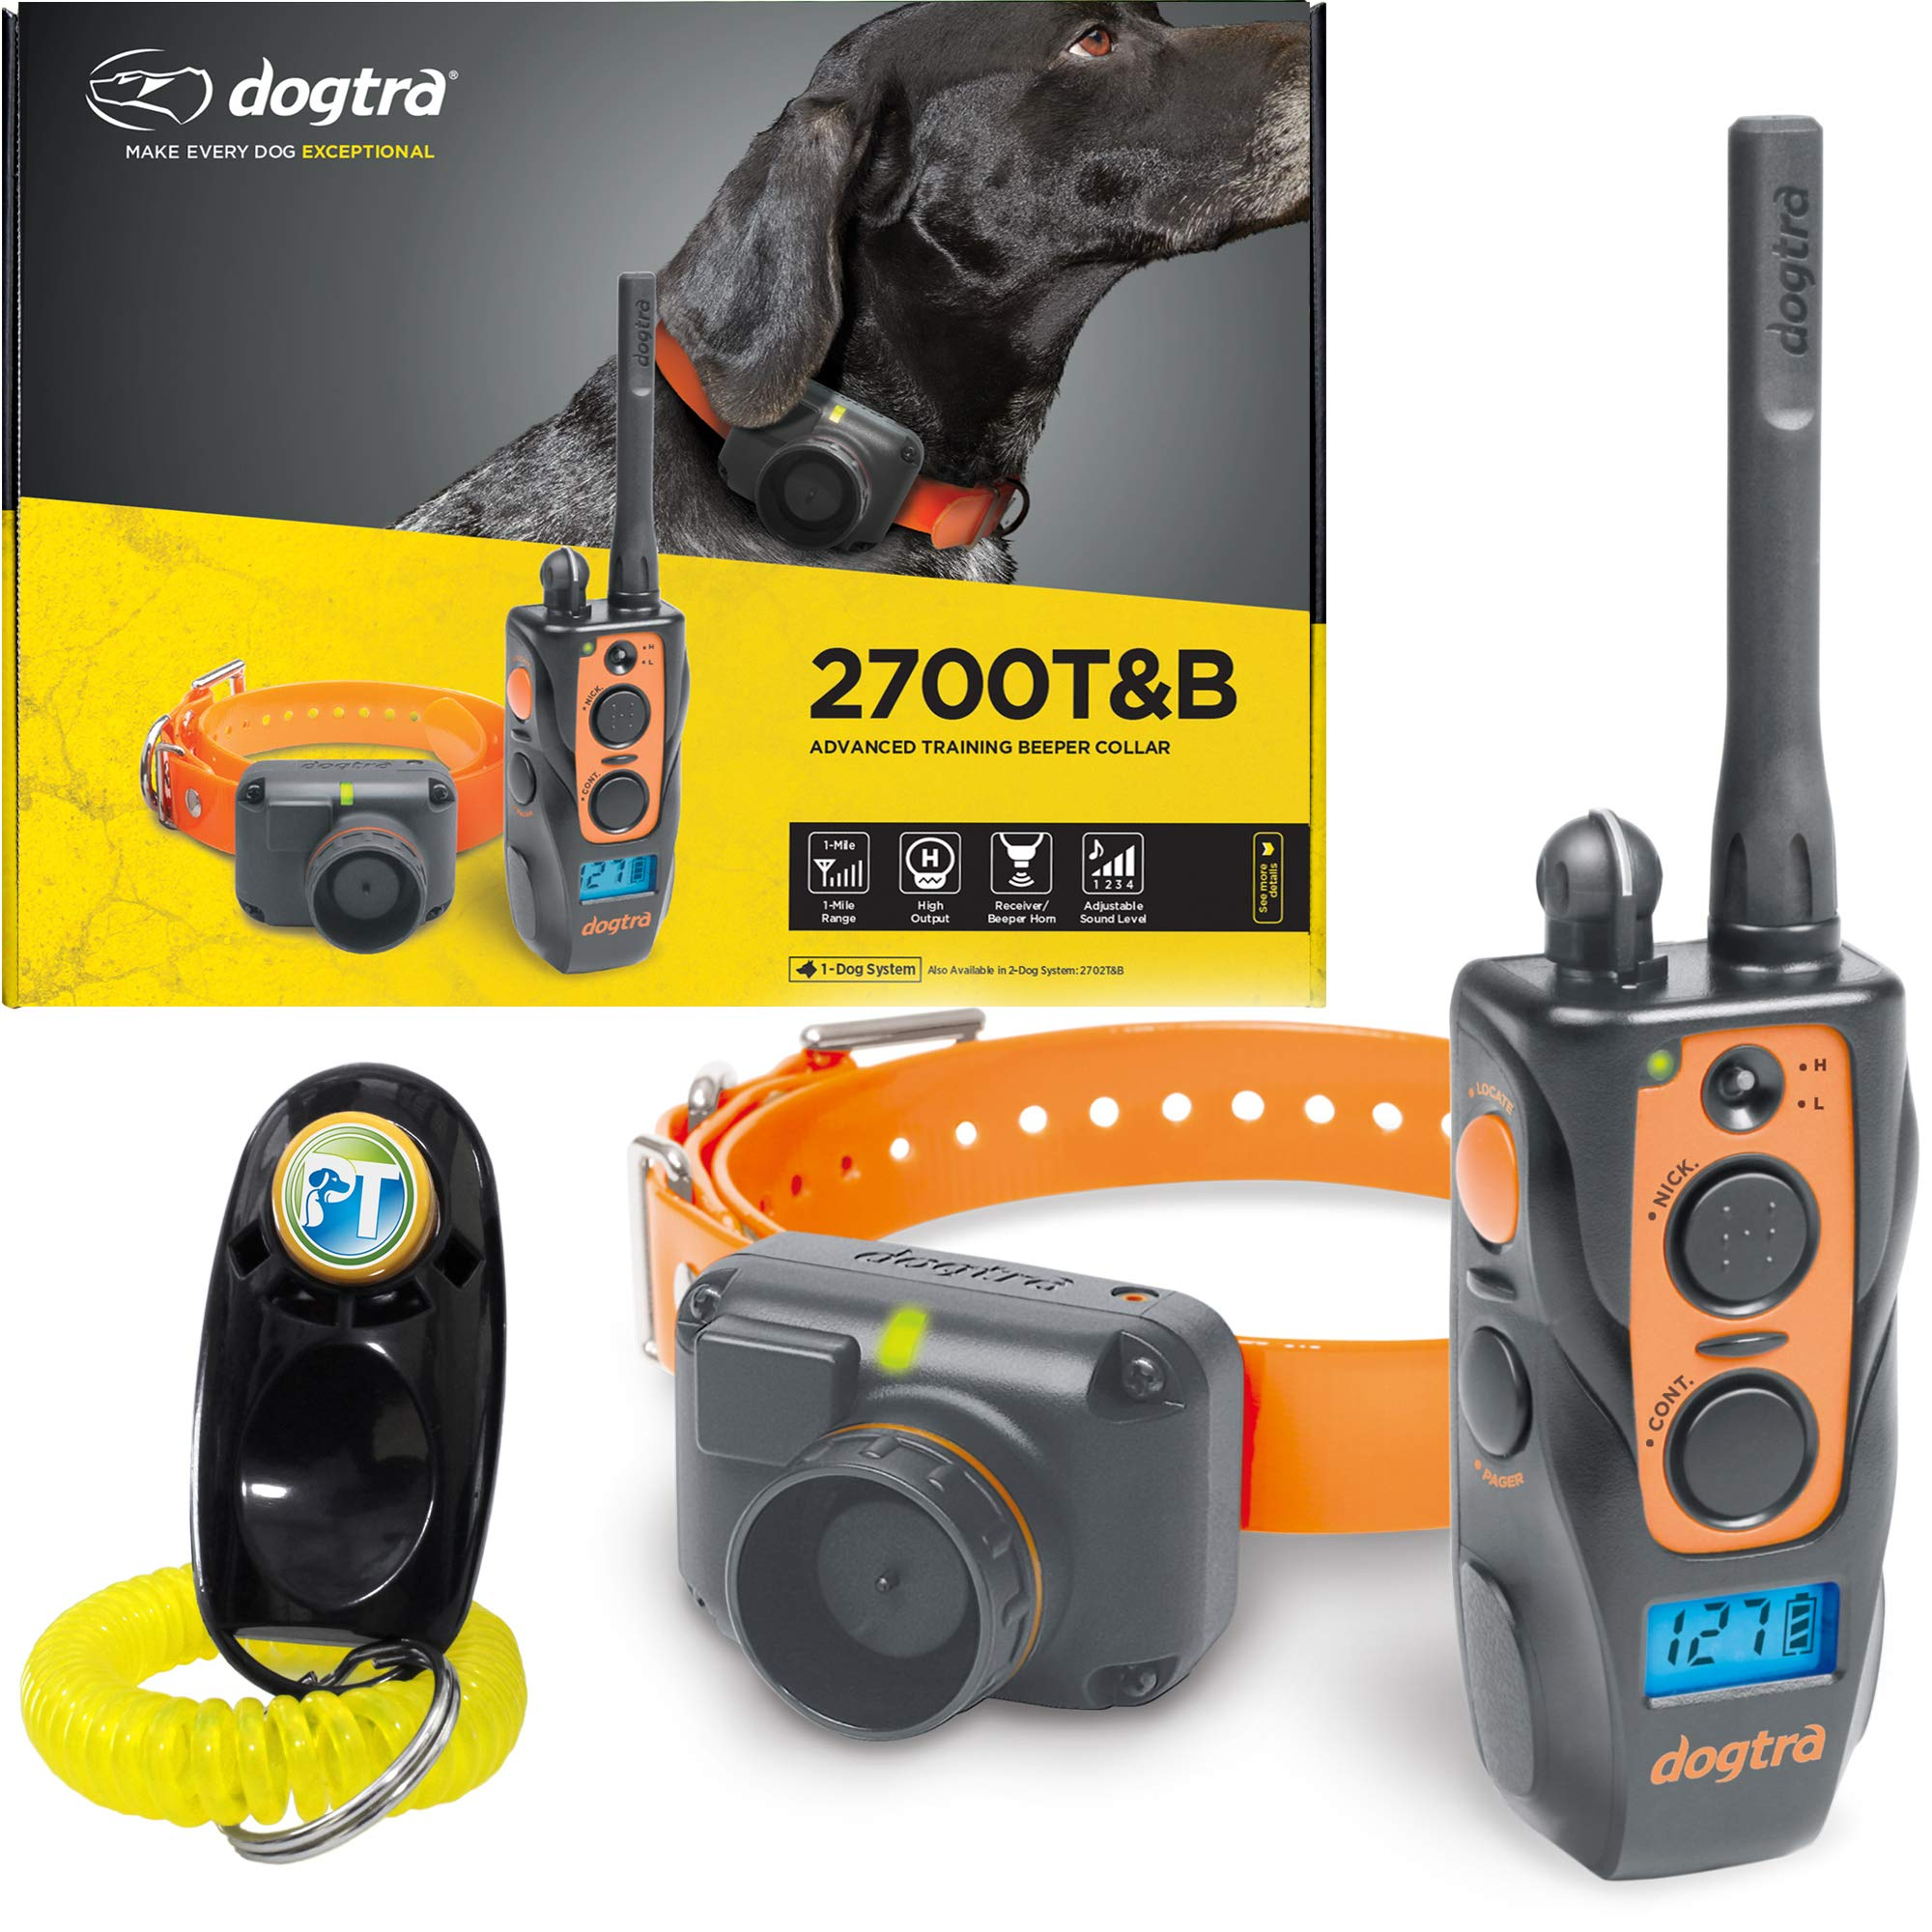 Dogtra 2700T&B Remote Training and Beeper Collar - 1 Mile Range, Fully Waterproof, Rechargeable, Shock, Vibration - Includes PetsTEK Dog Training Clicker